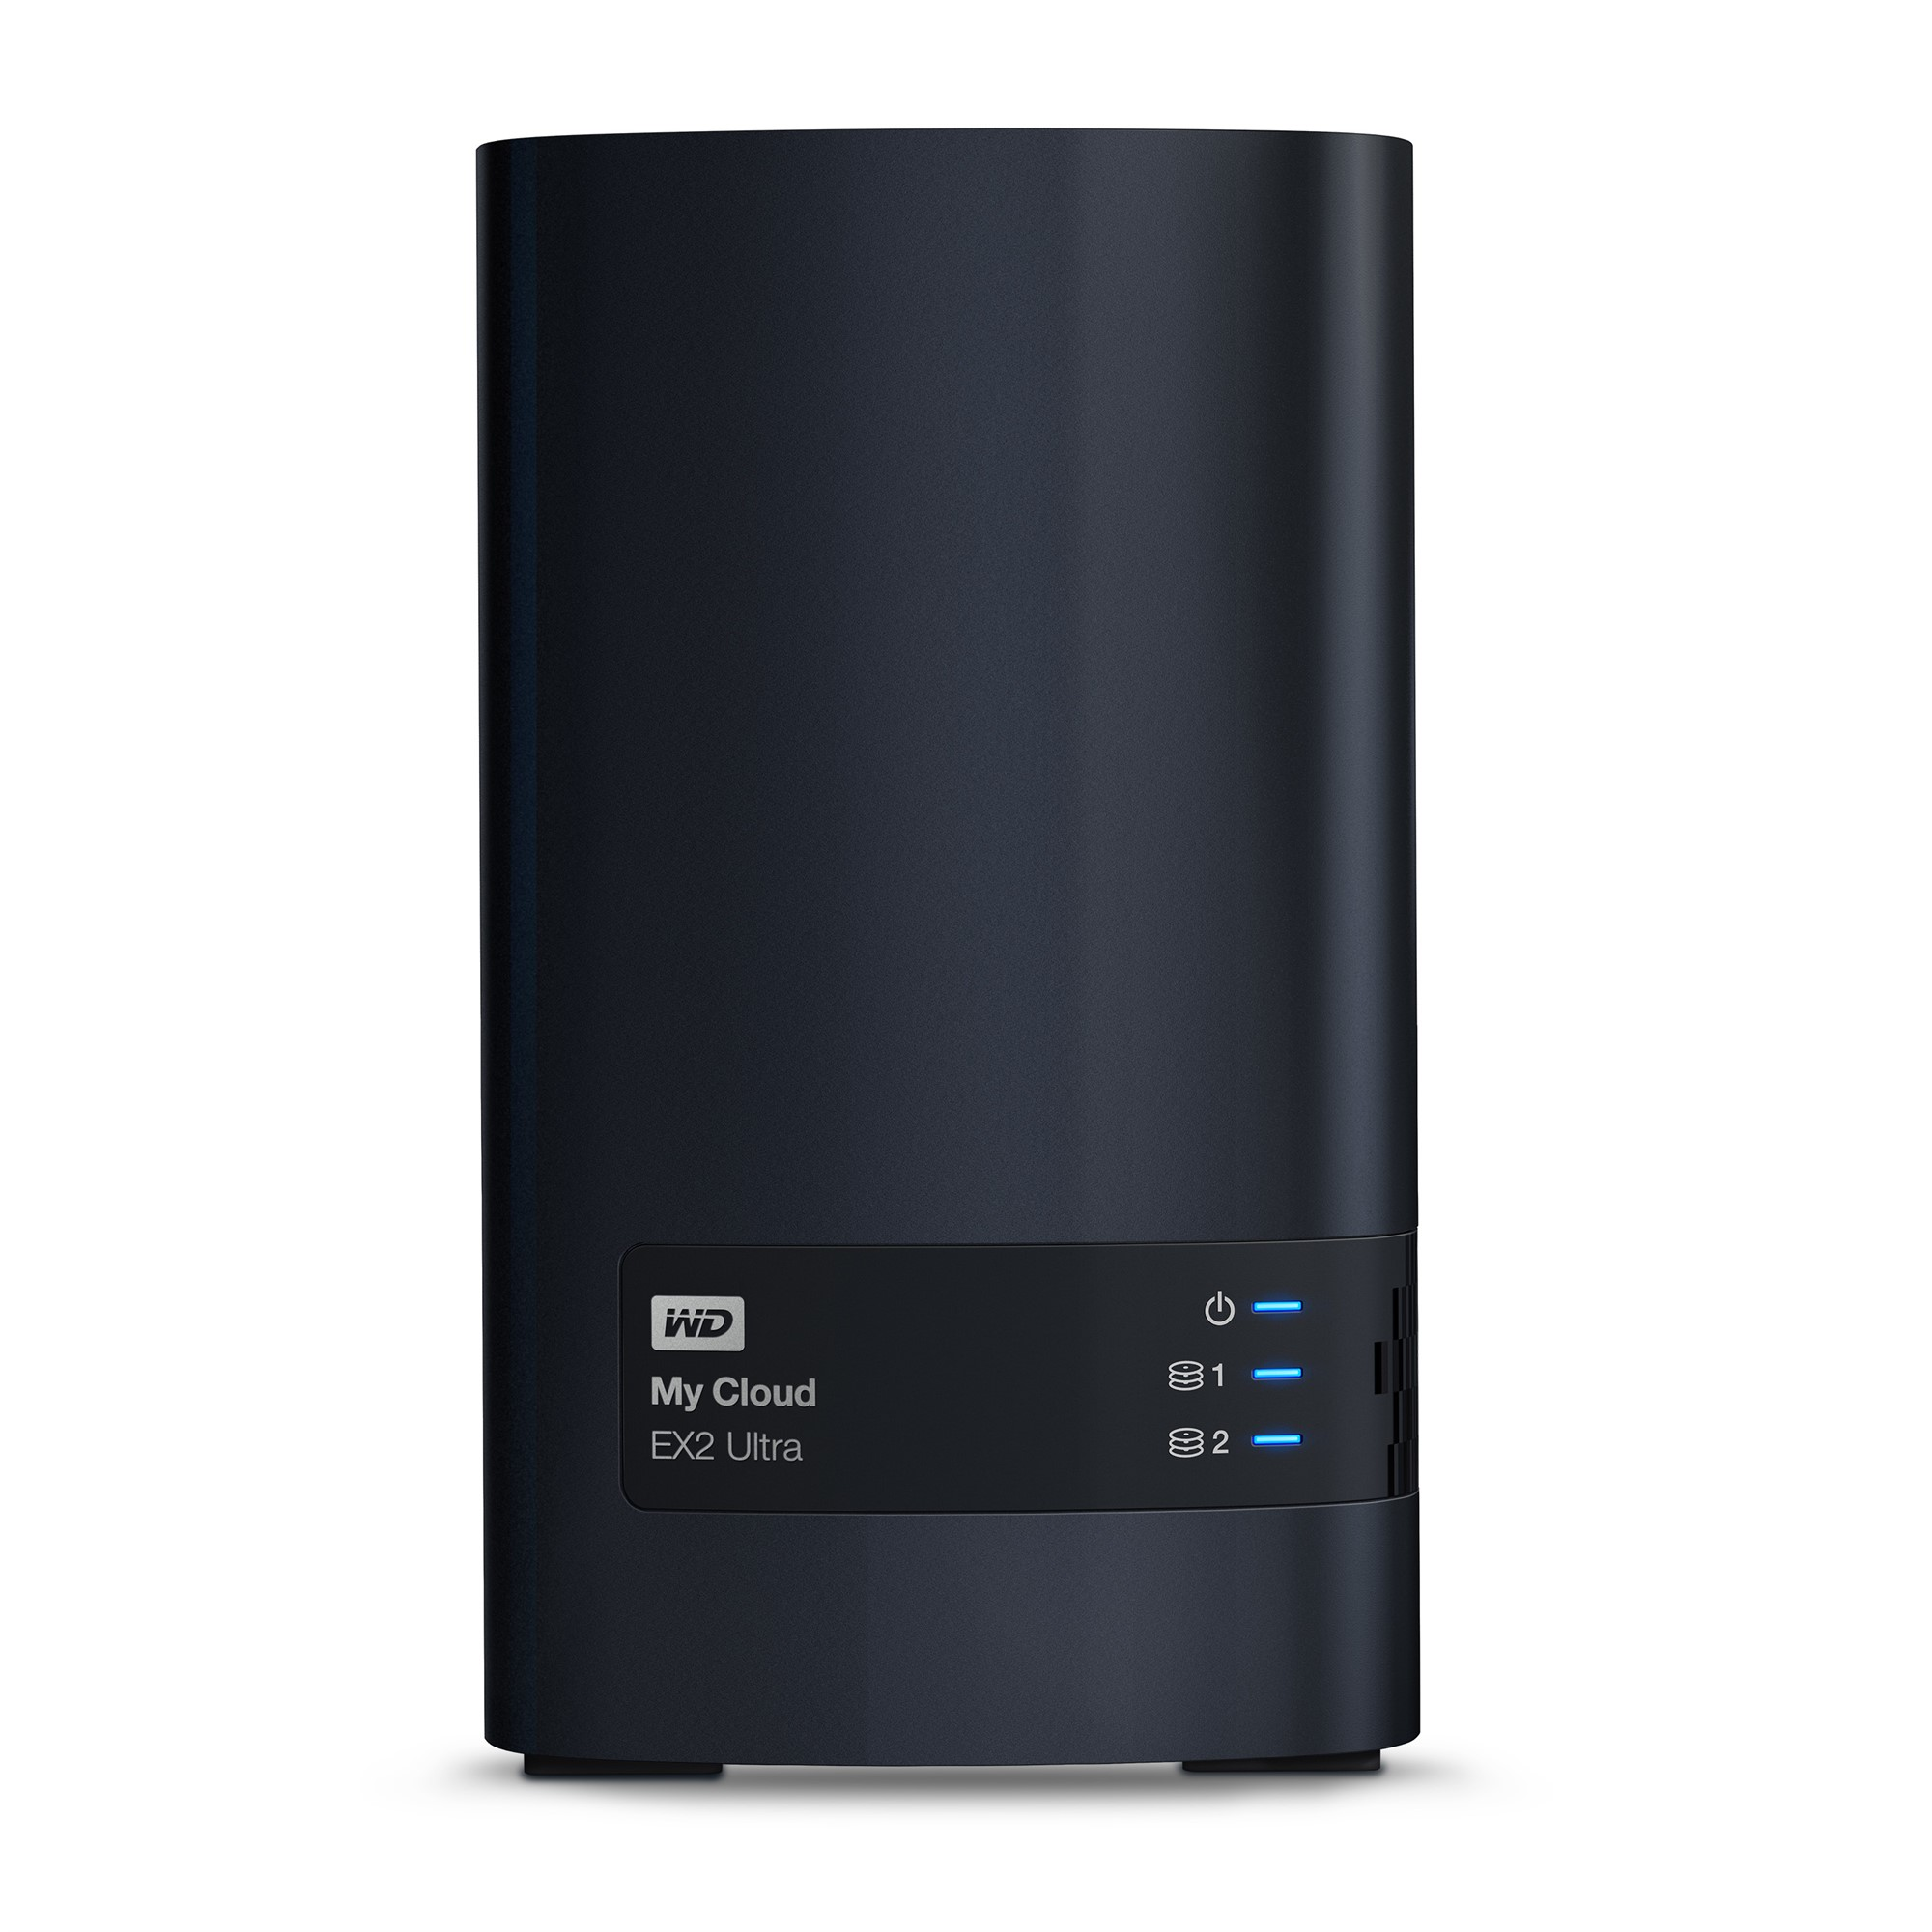 WESTERN DIGITAL MY CLOUD EX2 ULTRA NAS DESKTOP ETHERNET LAN BLACK